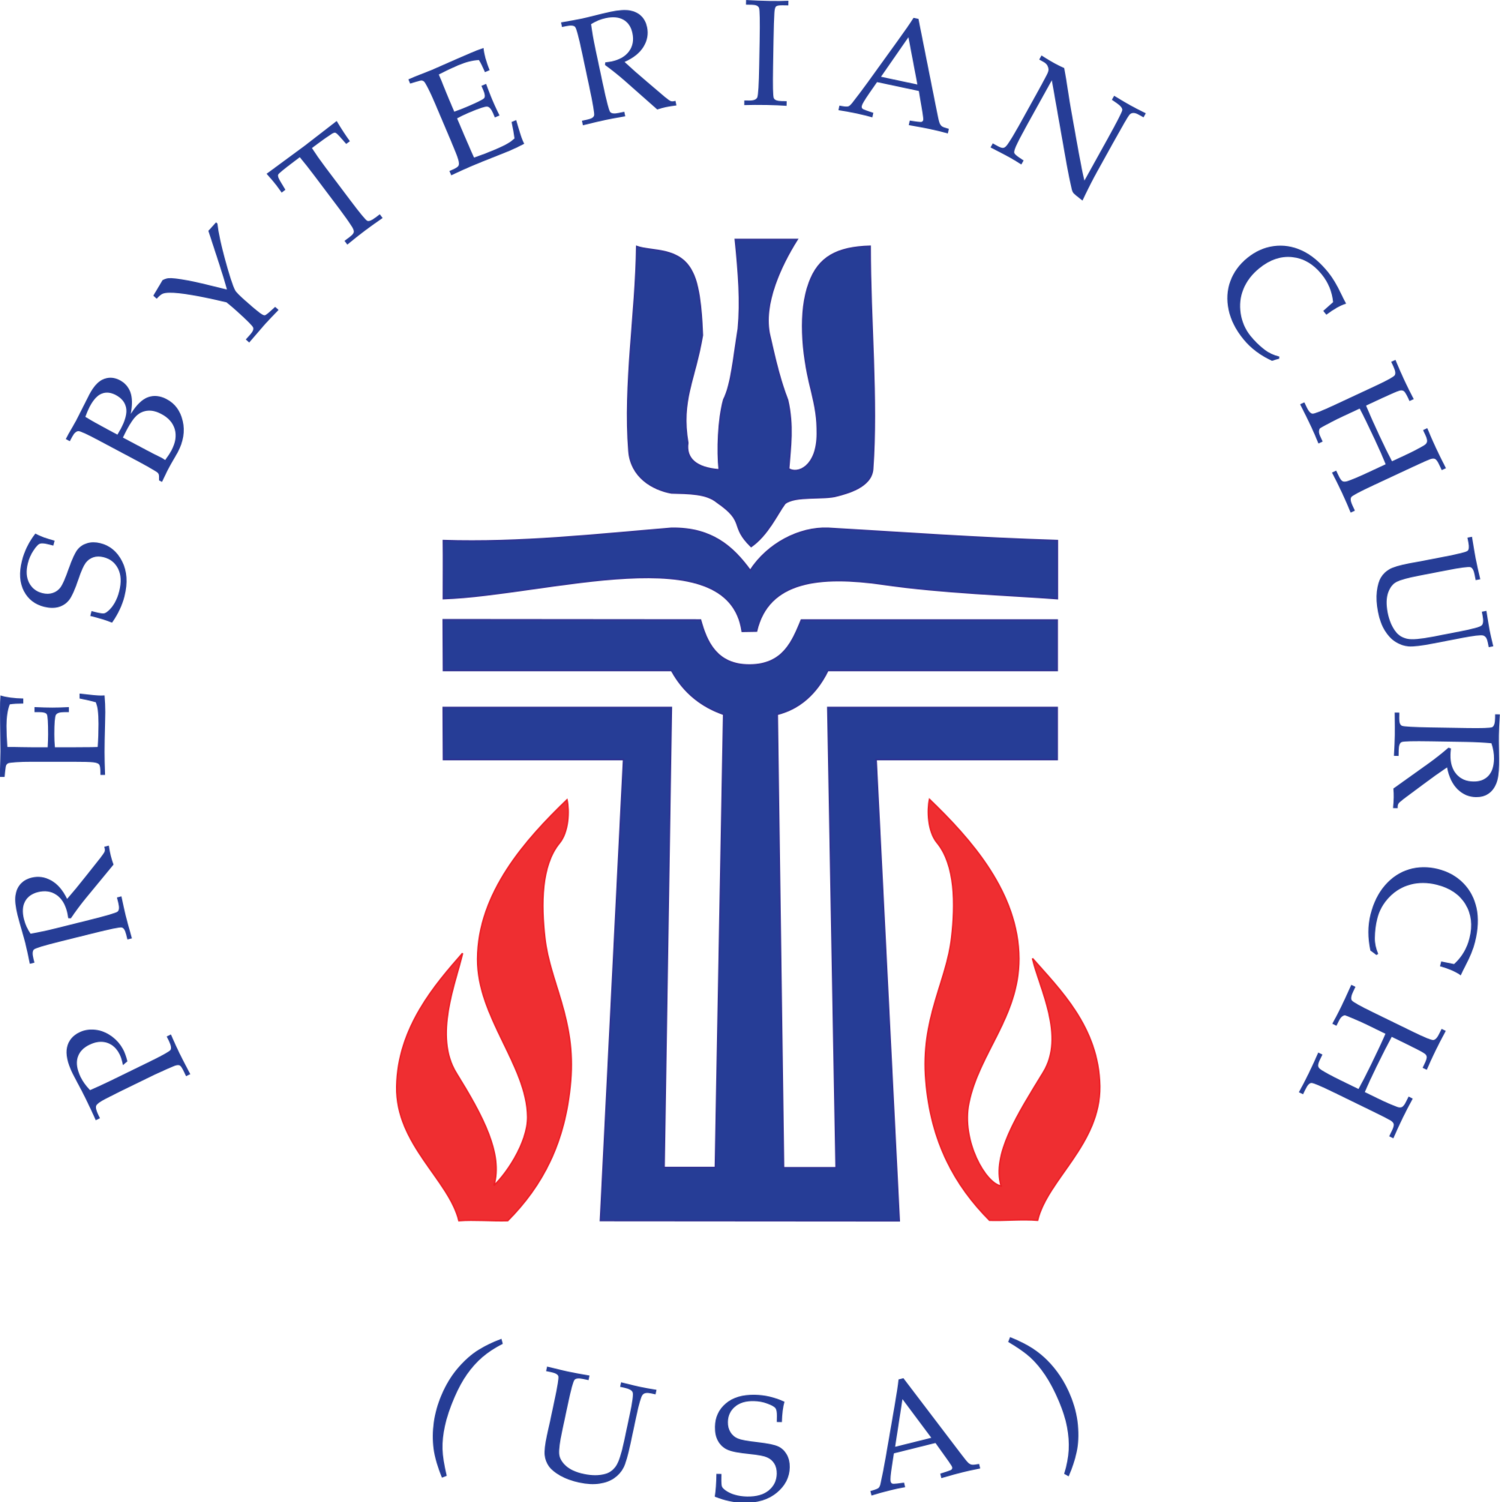 The First Presbyterian Church of Sussex